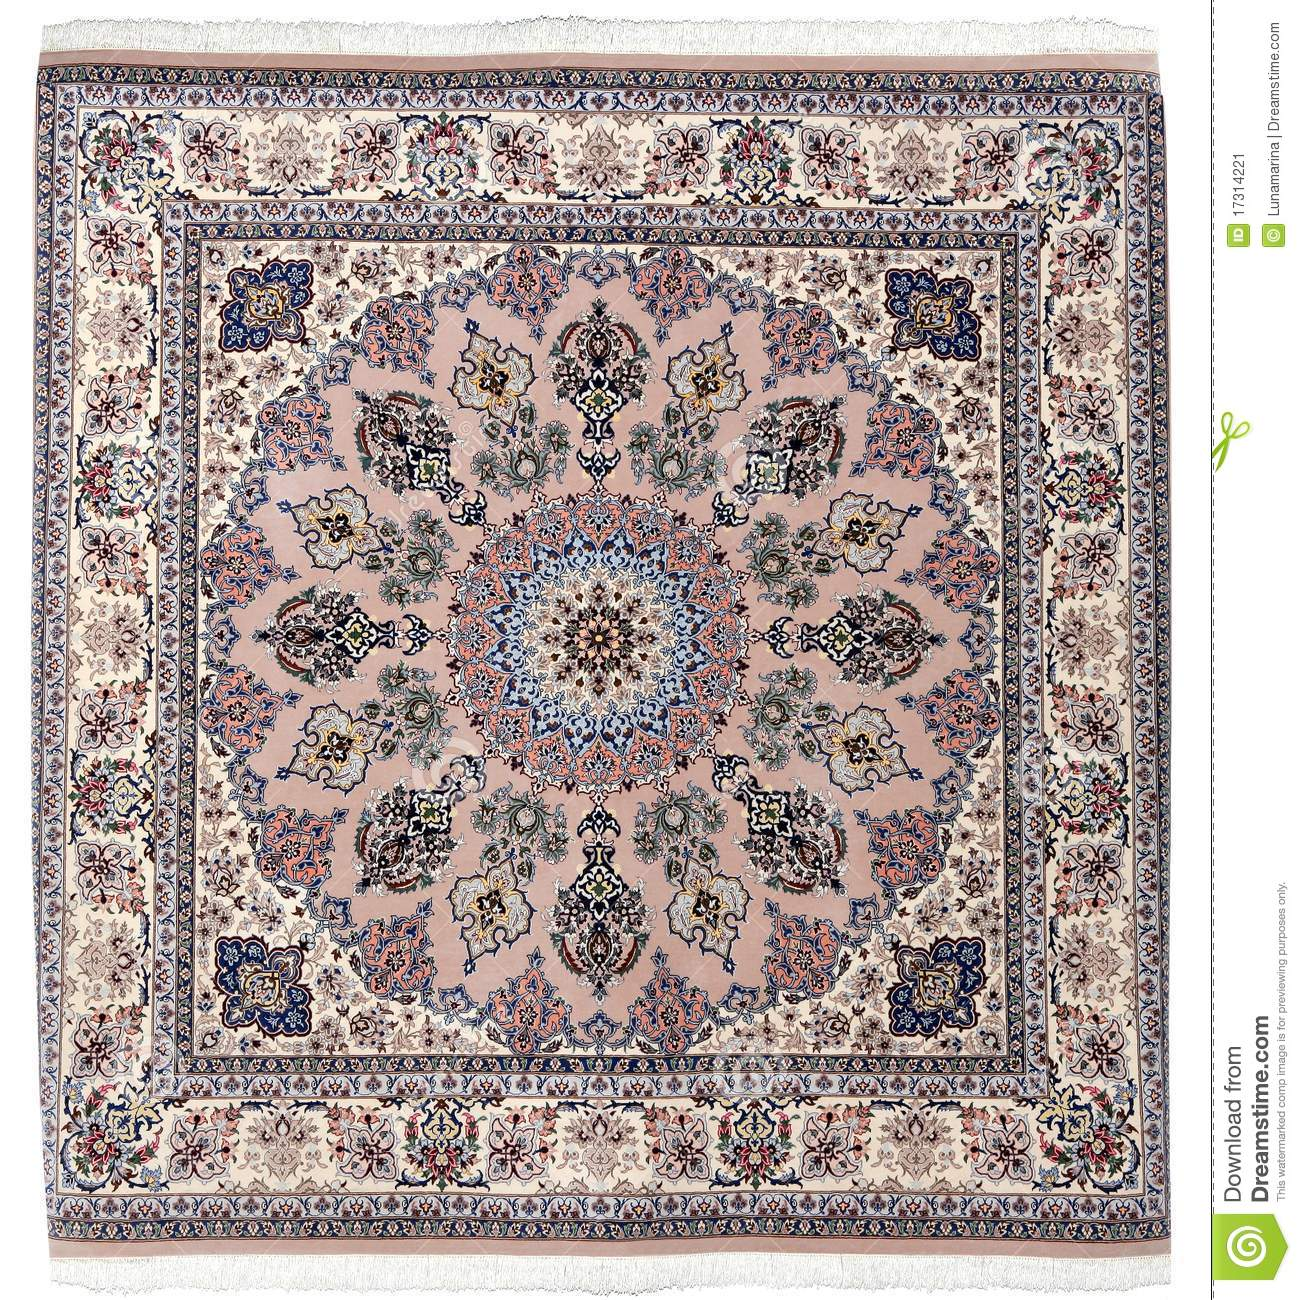 Arabic Carpet Colorful Persian Islamic Handcraft Stock